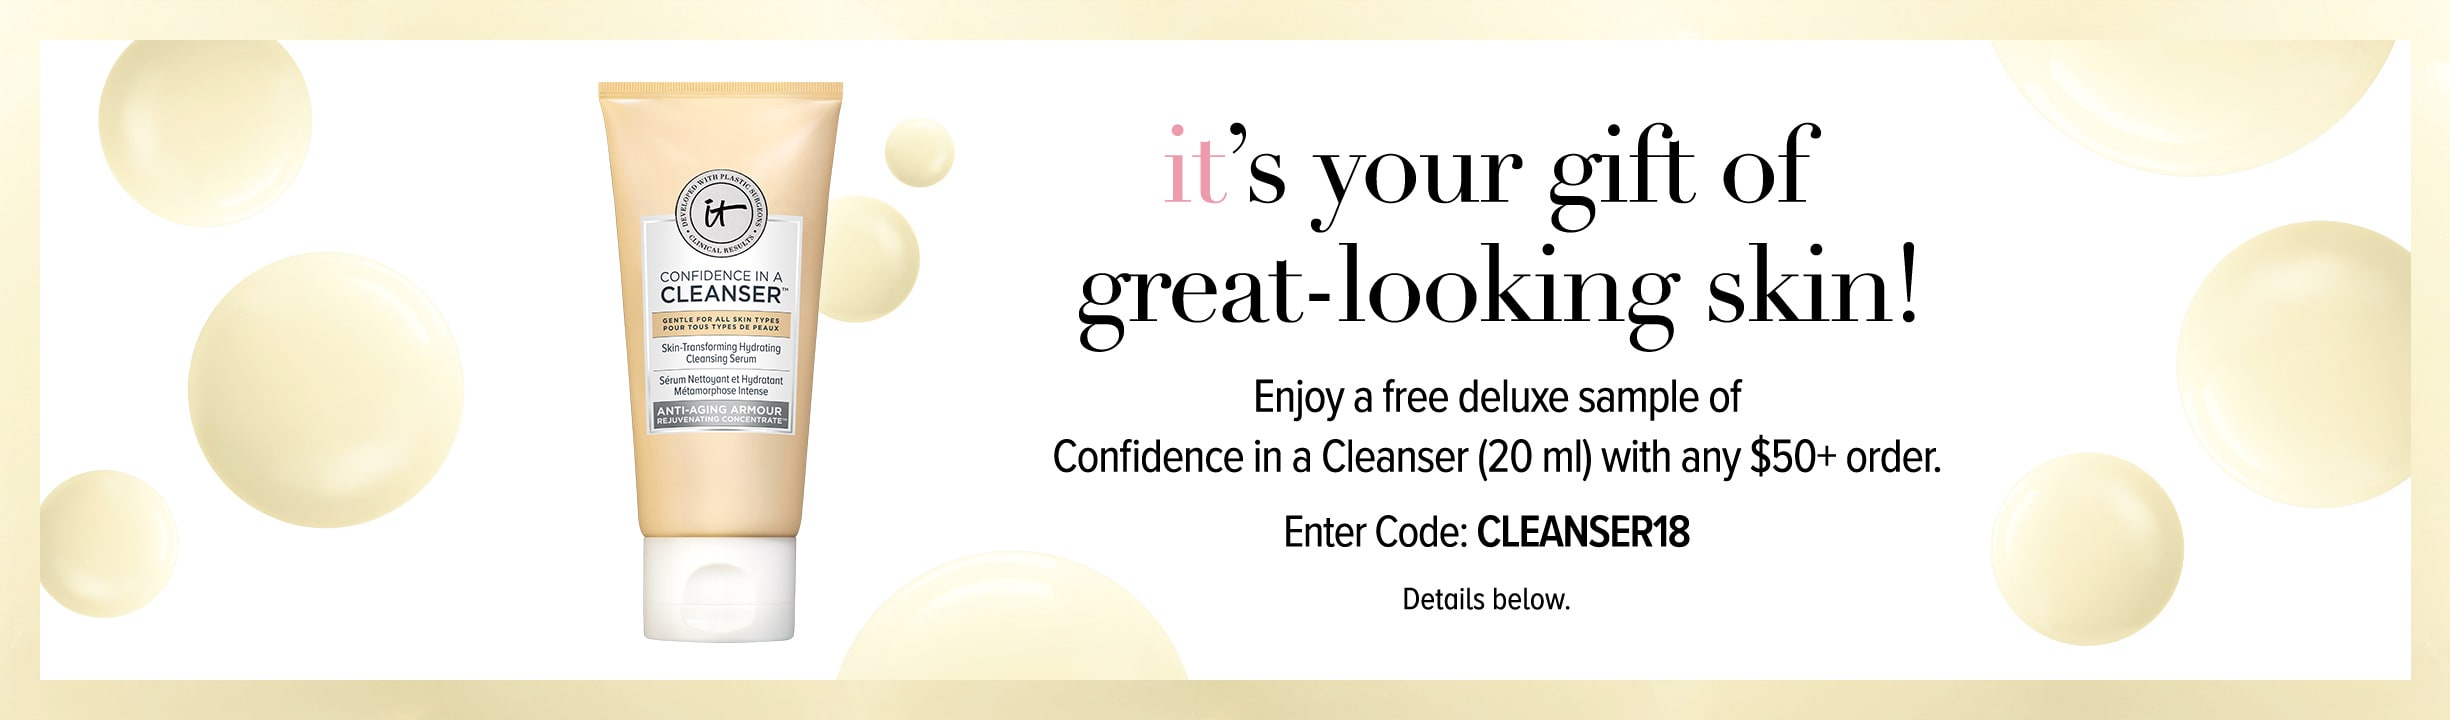 Confidence in a Cleanser GWP